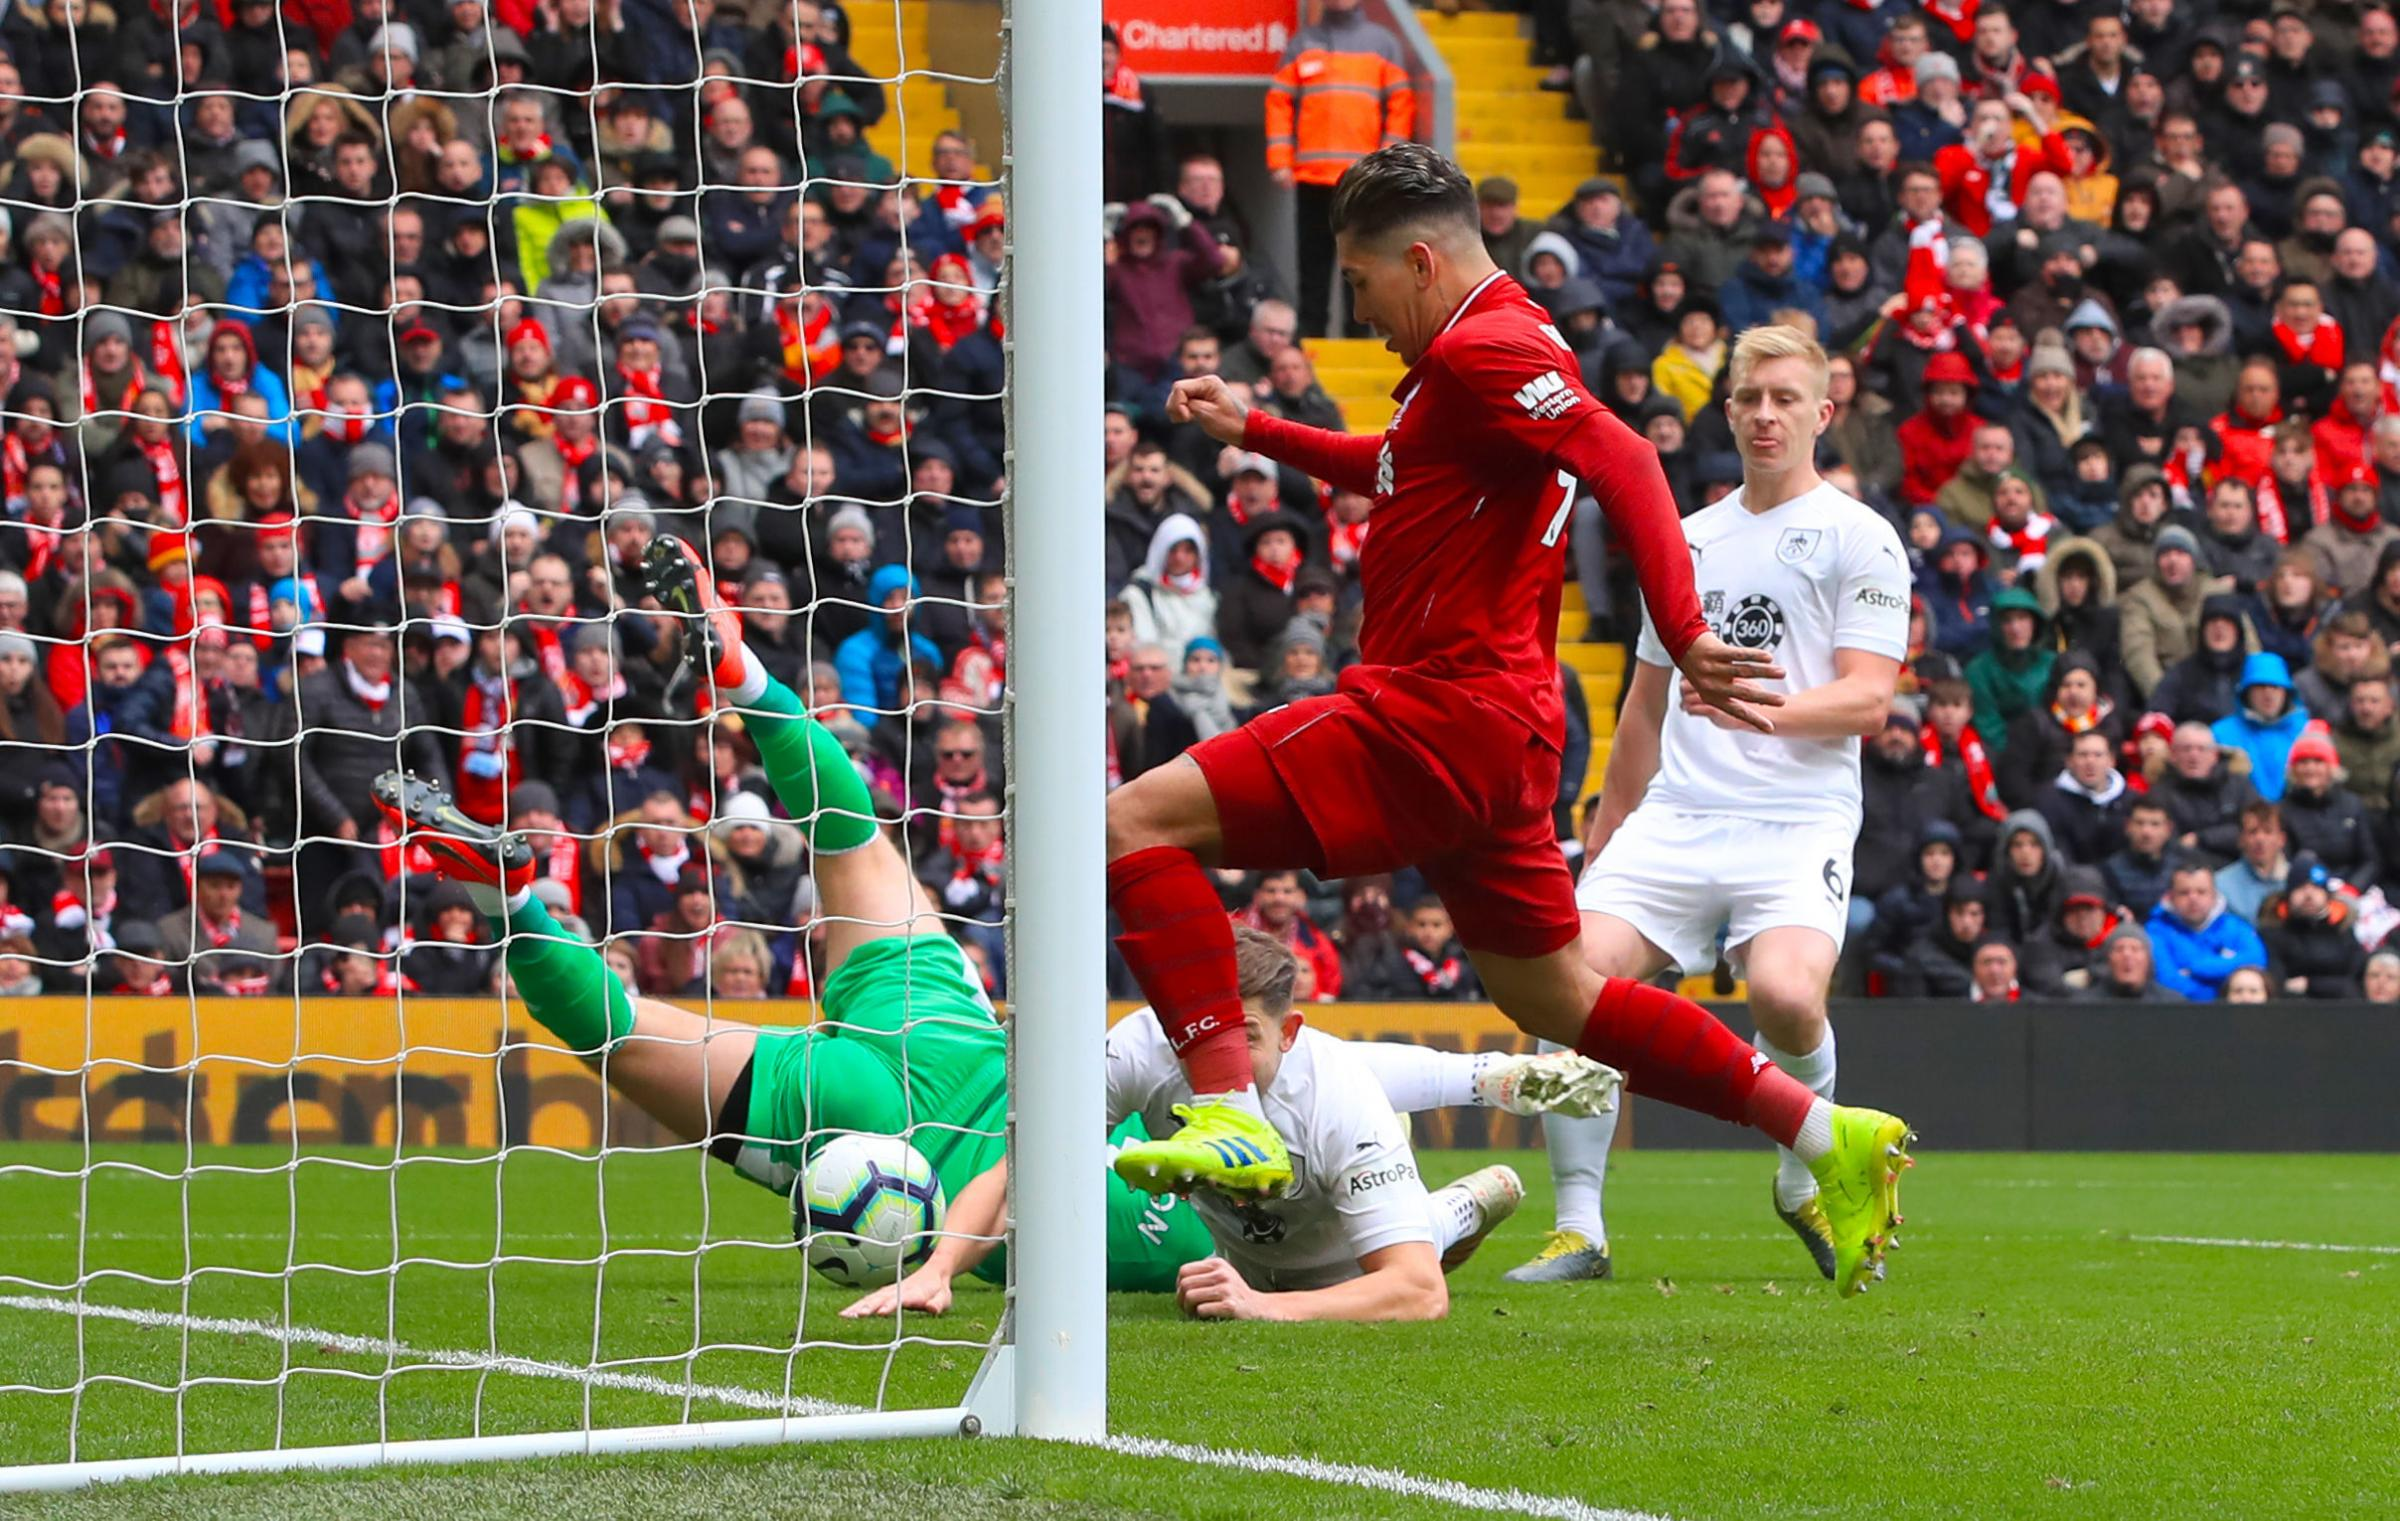 Liverpool's Roberto Firmino scores his side's first goal of the game during the Premier League match at Anfield, Liverpool. PRESS ASSOCIATION Photo. Picture date: Sunday March 10, 2019. See PA story SOCCER Liverpool. Photo credit should read: Pet